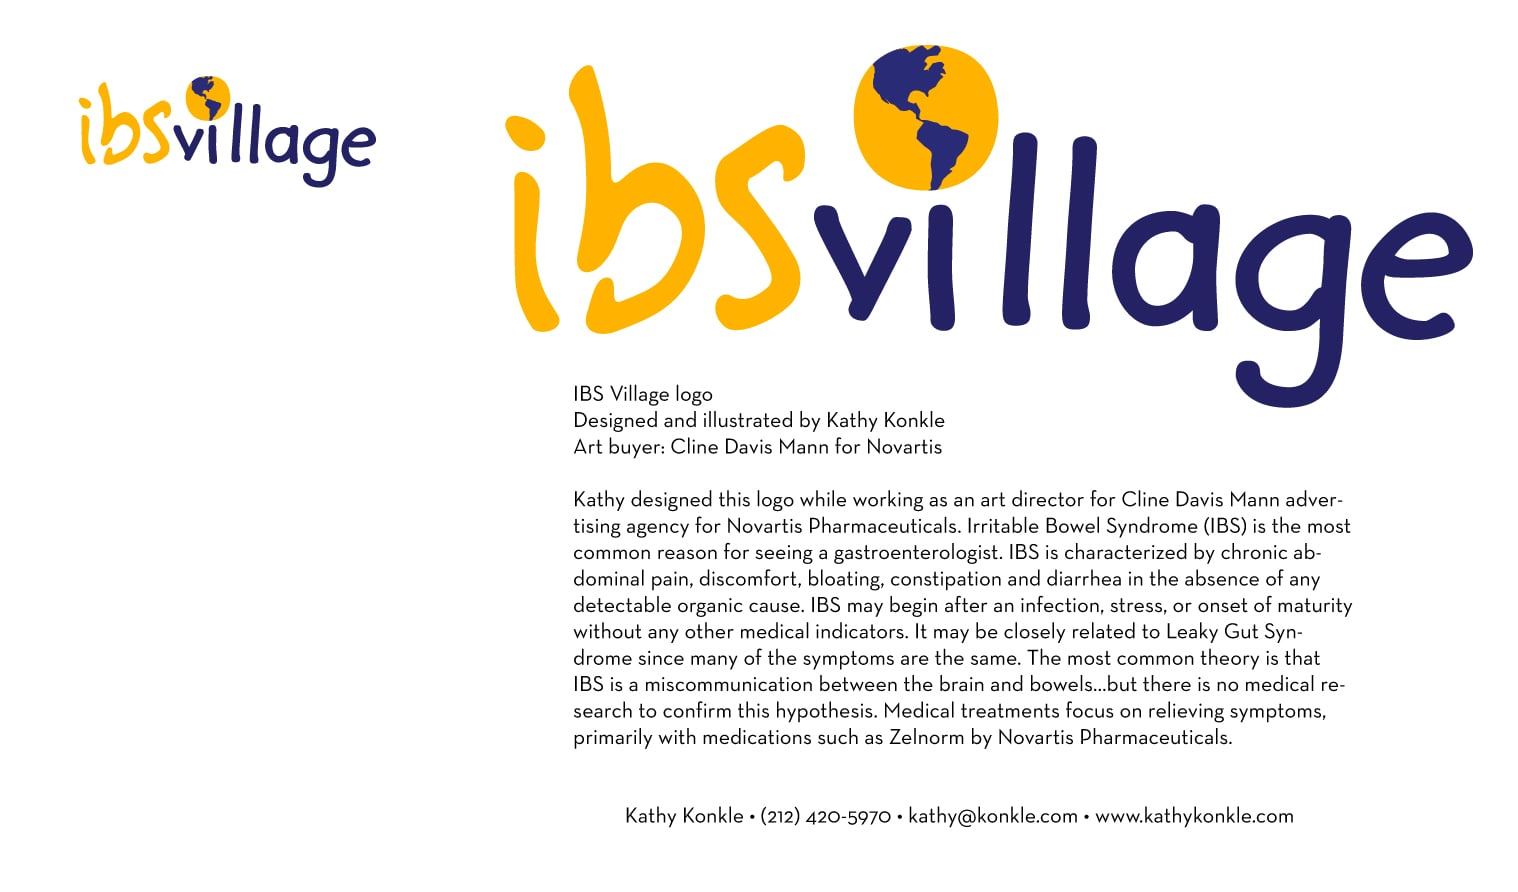 IBS-Village-logo.jpg